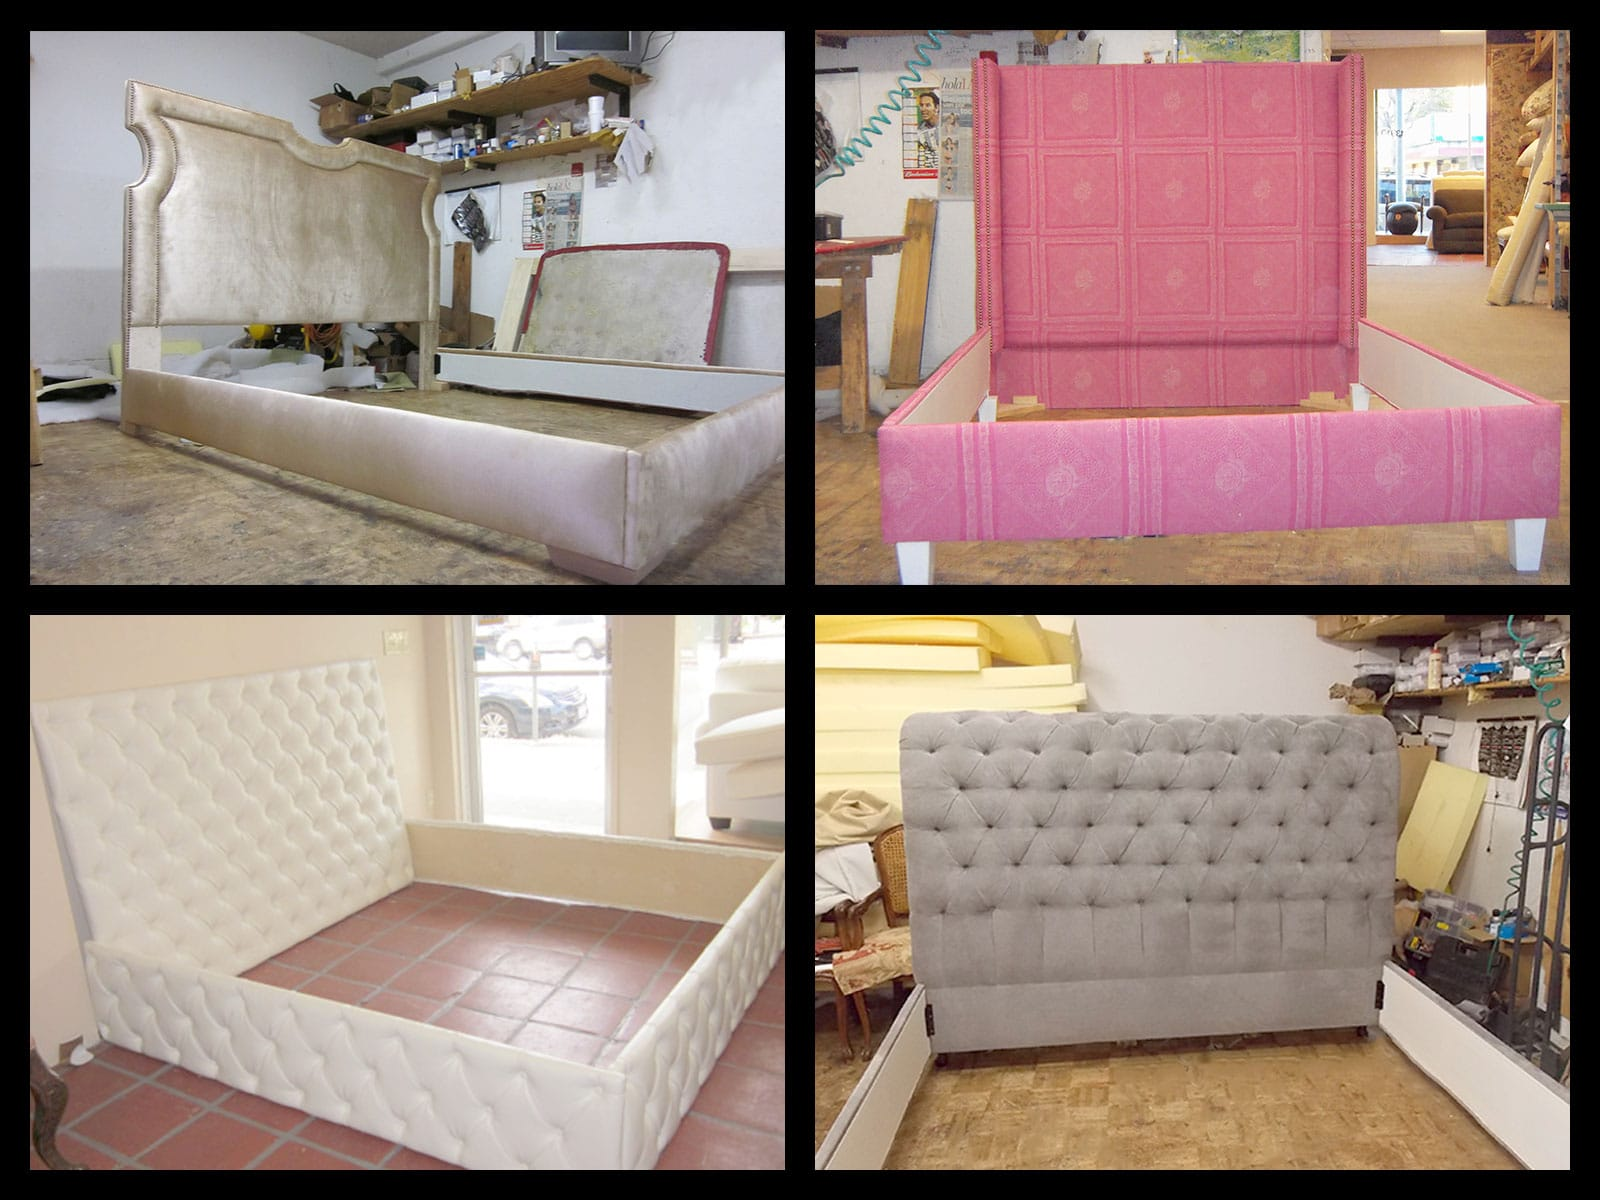 Upholstered headboards van nuys california furniture for Furniture upholstery